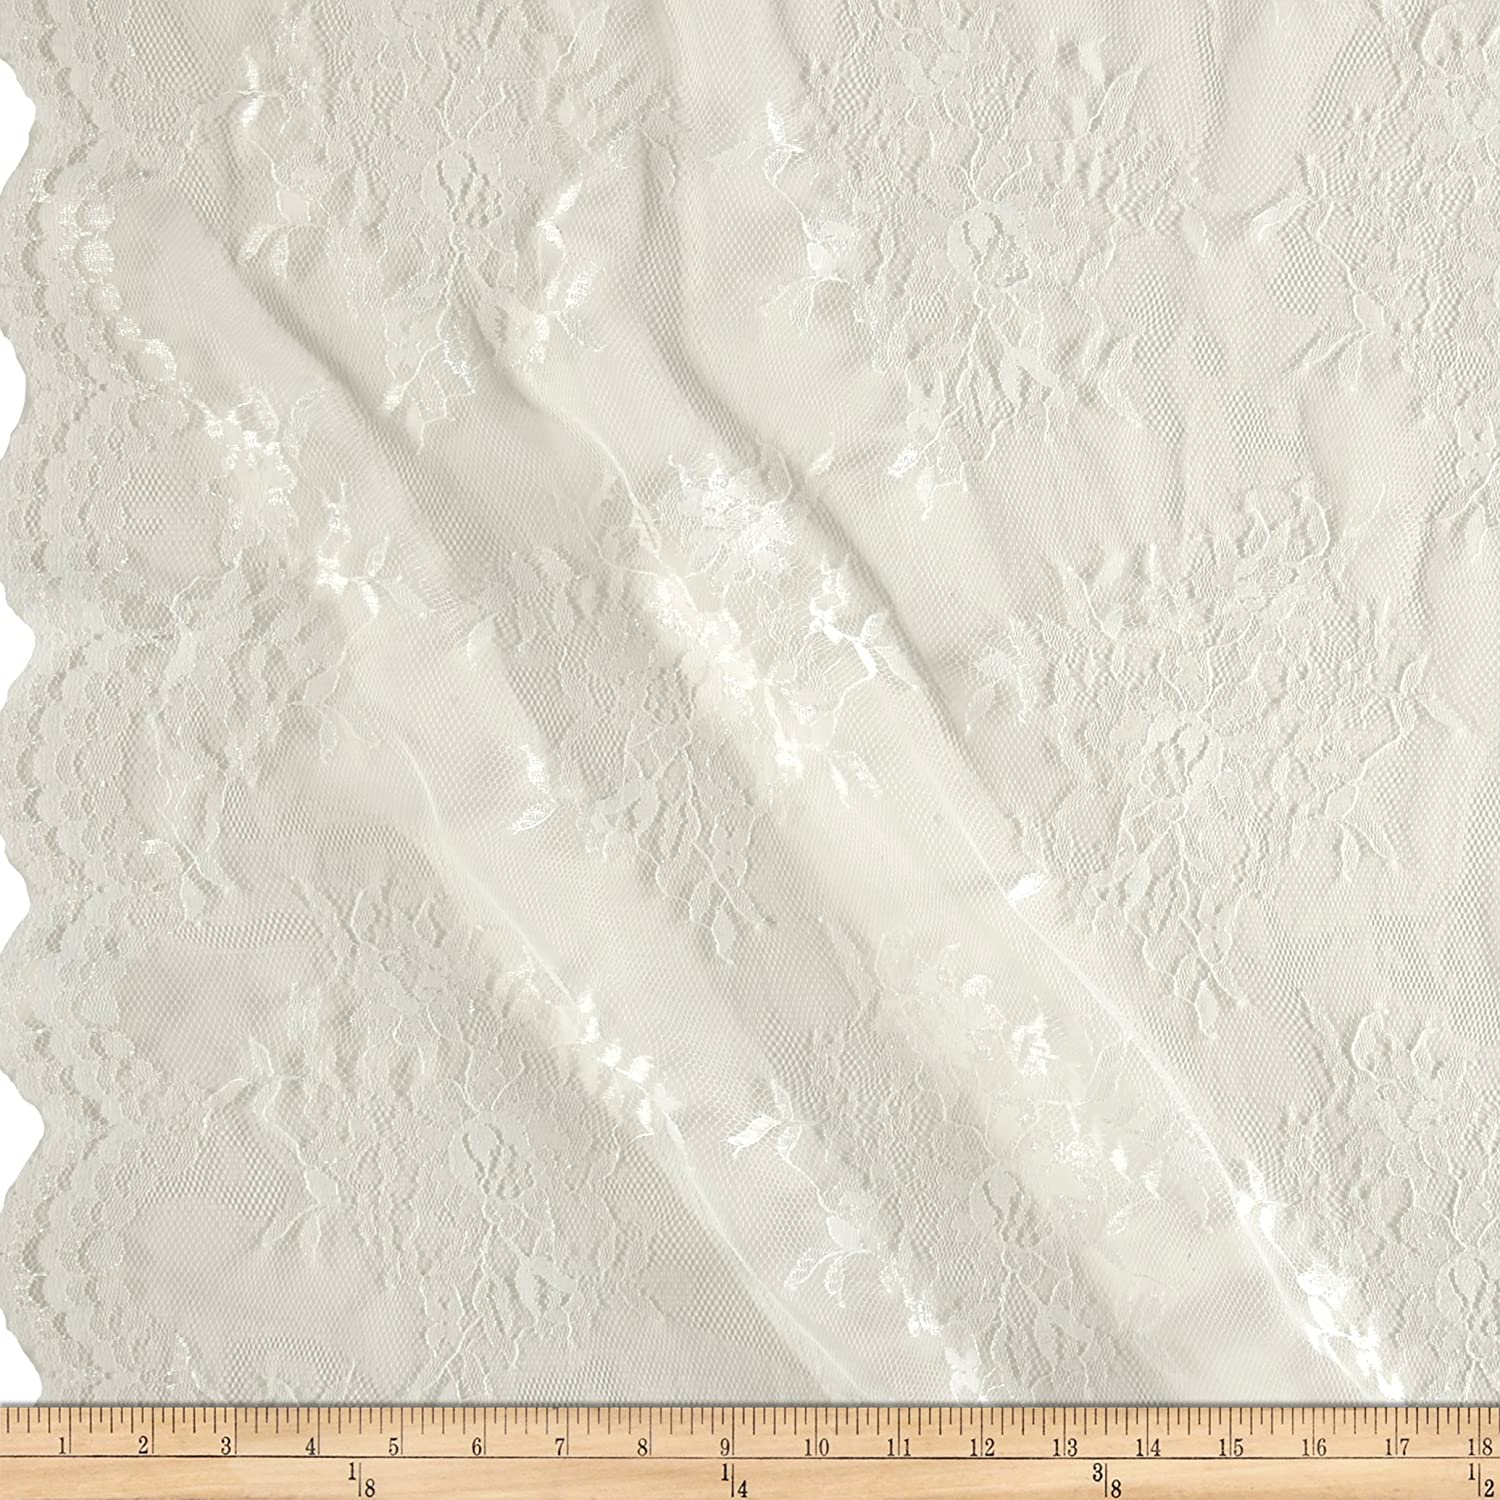 Amazon.com: Ben Textiles Chantilly Lace Double Border Ivory Fabric by The  Yard